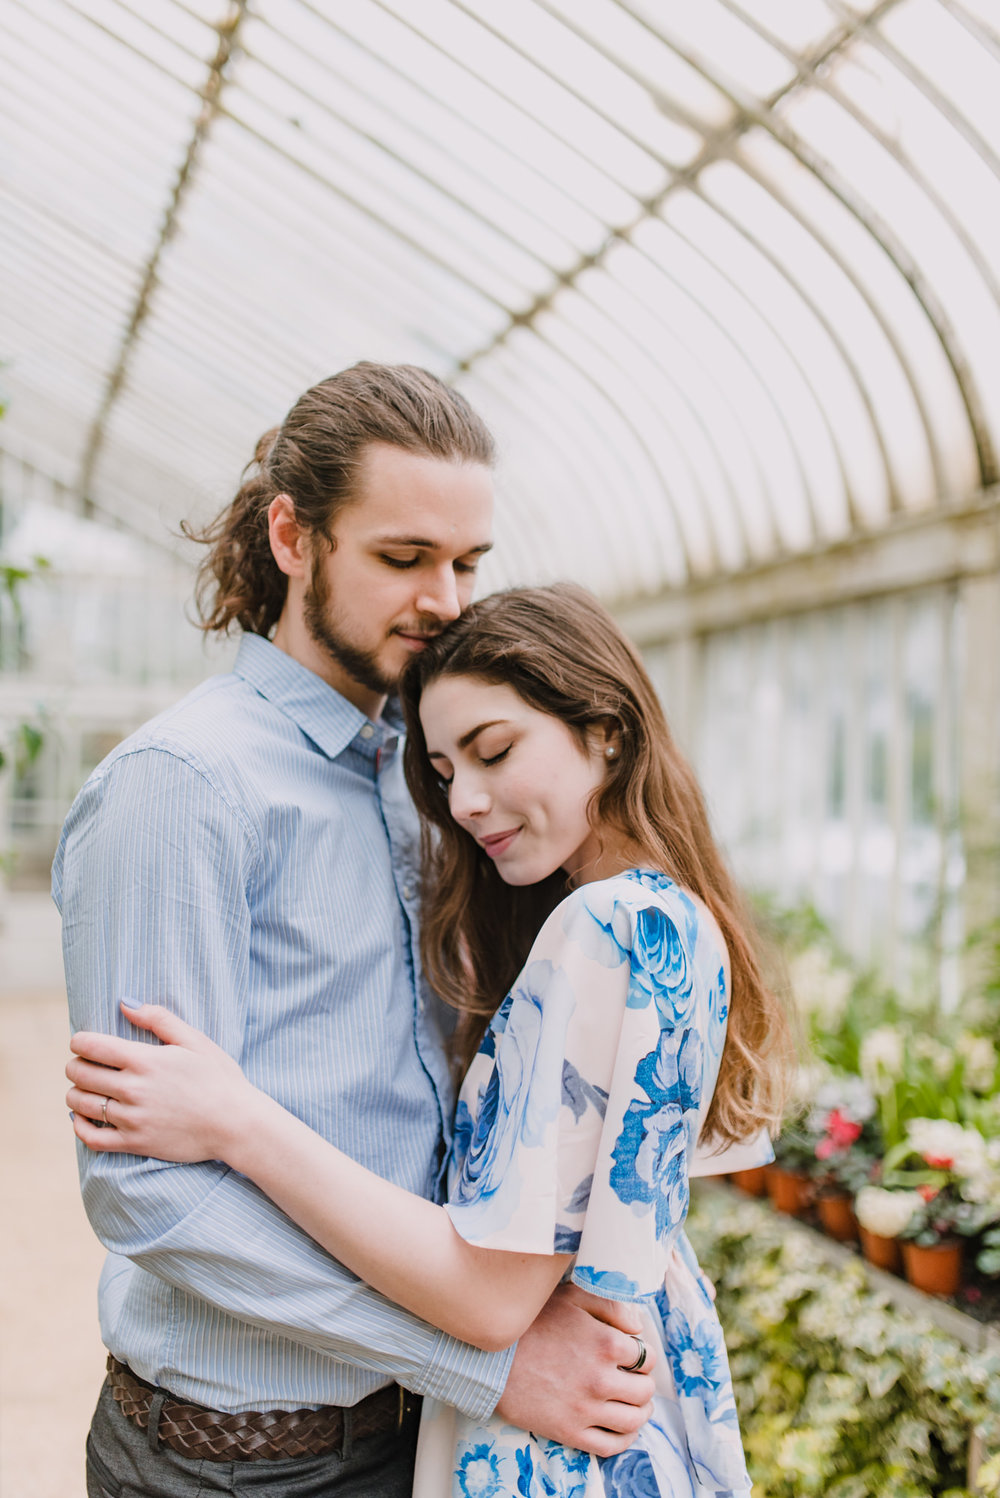 engagement photos belfast botanic garden19.jpg